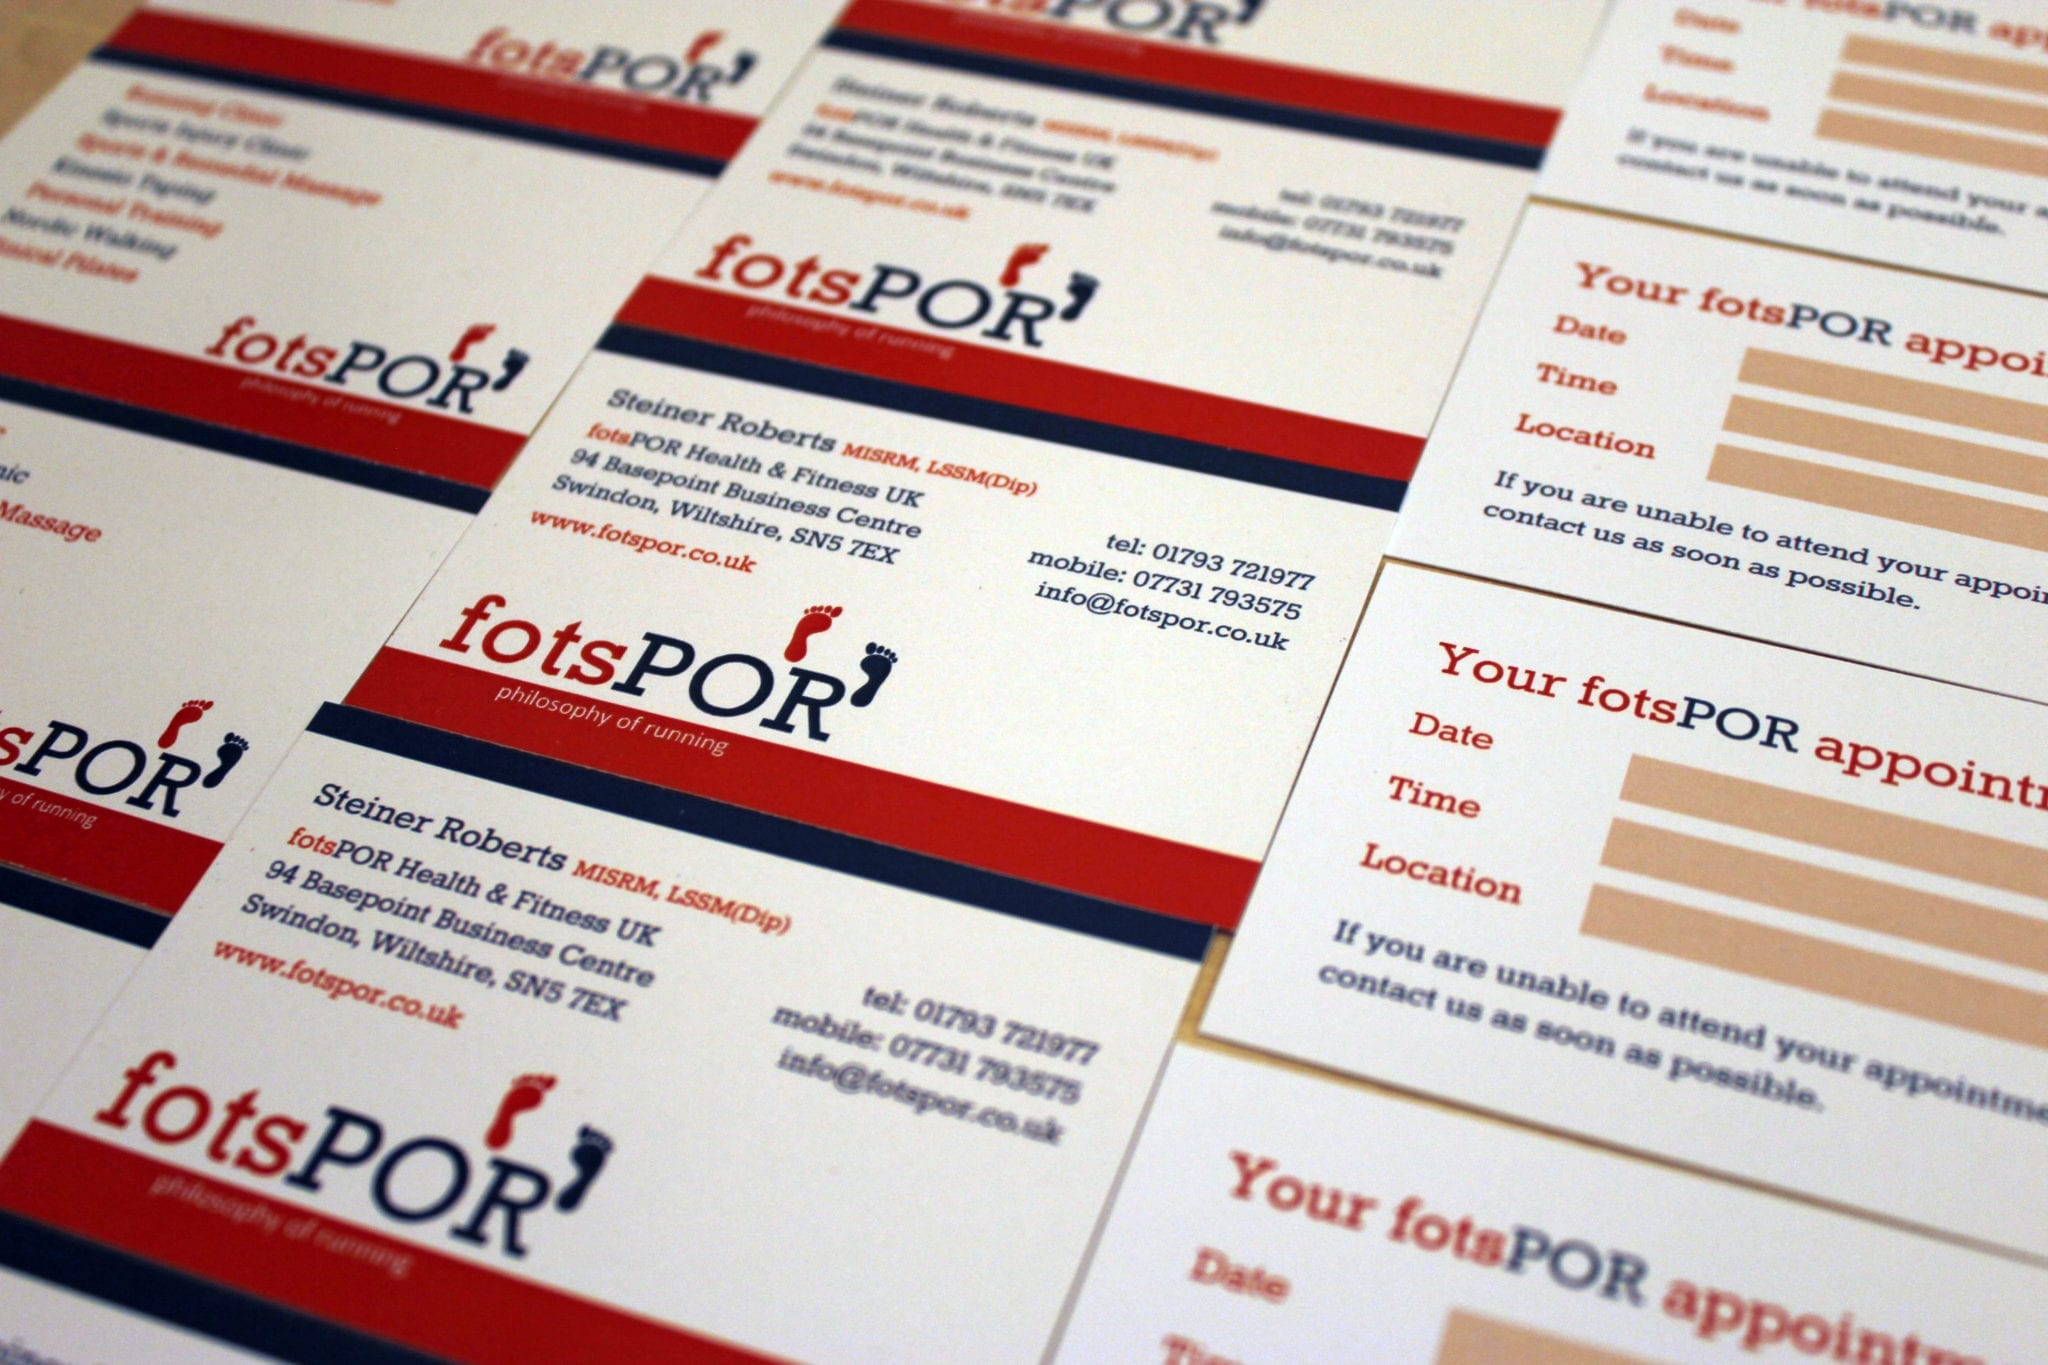 business-and-appointment-cards-for-fotspor-uk.jpg